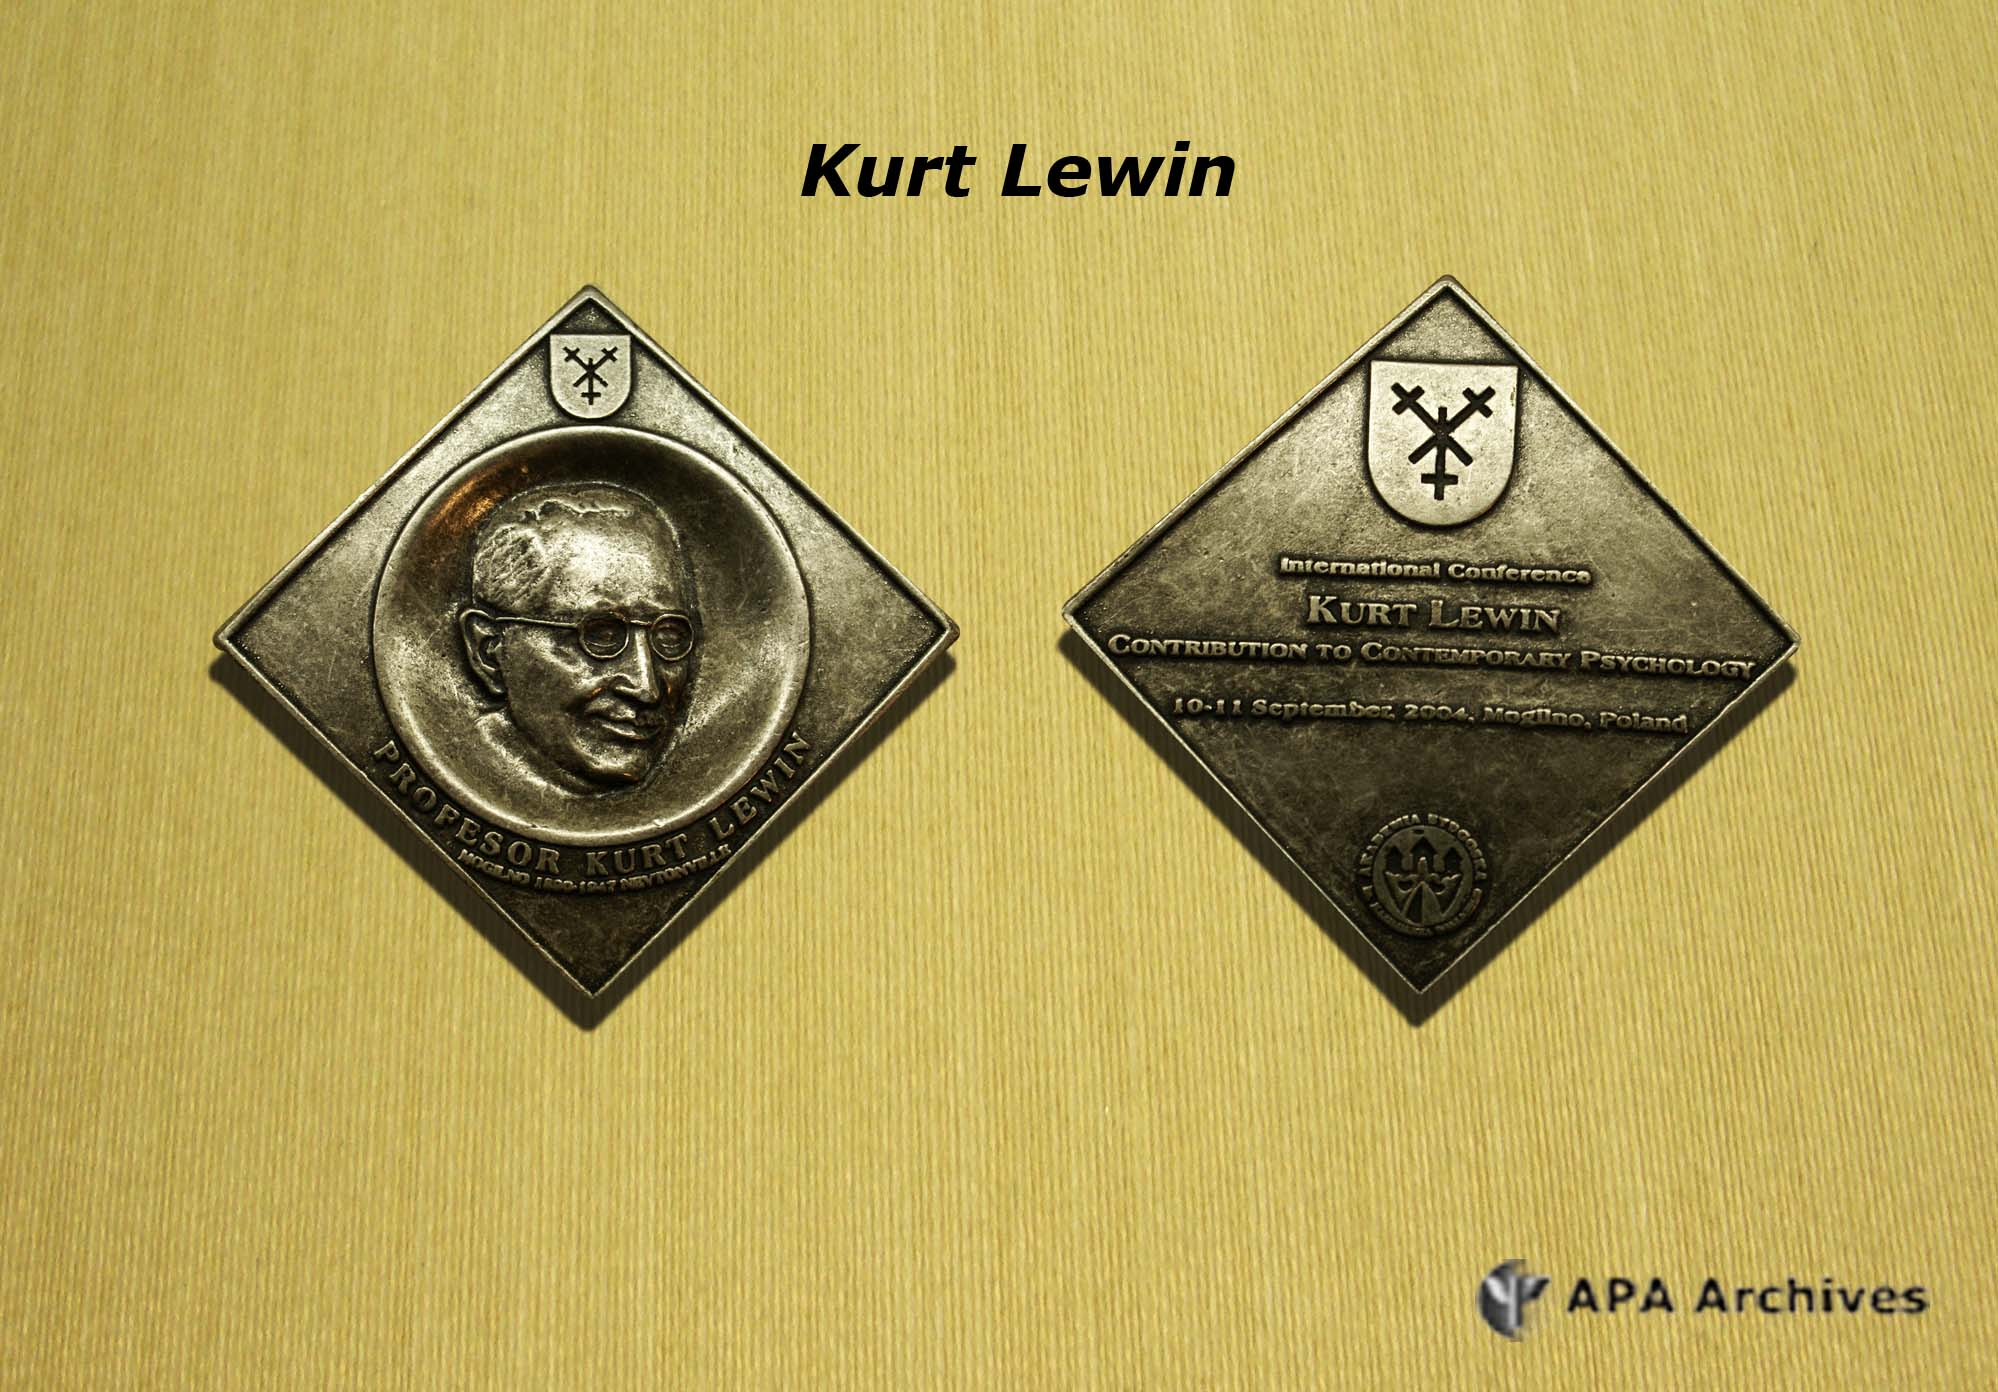 kurt lewin Kurt zadek lewin was born on september 9, 1890, into a jewish family in mogilno, poland (then in posen, germany) lewin joined the german armed forces when world war i began but due to a war wound, he returned to berlin, to complete his phd, where he studied mathematics, physics, and psychology.